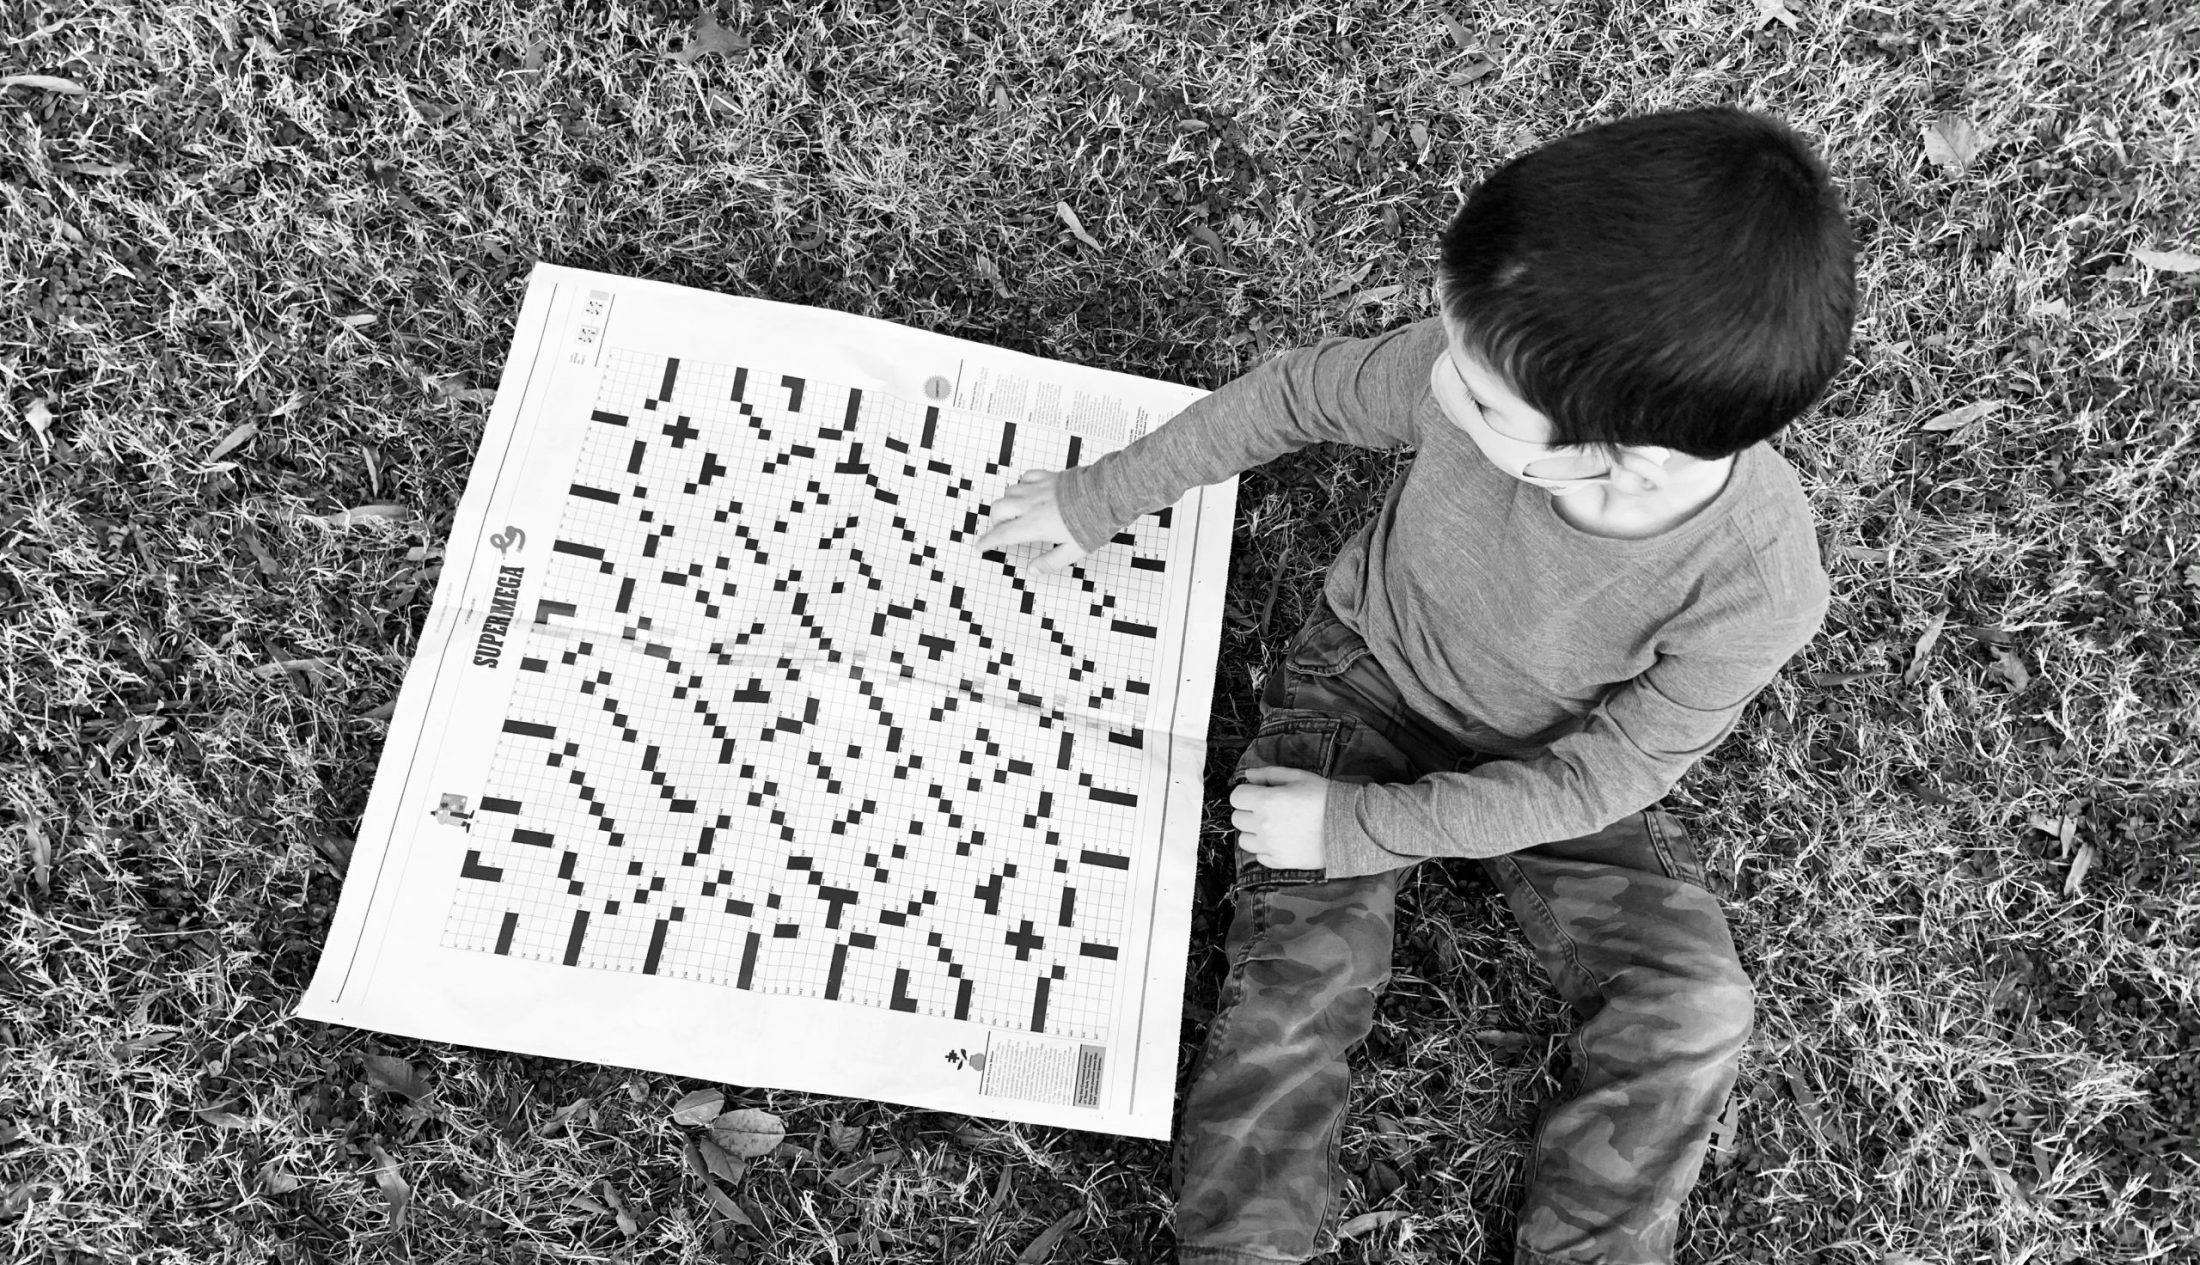 Son of DC widow blog writer Marjorie Brimley looks at crossword puzzle